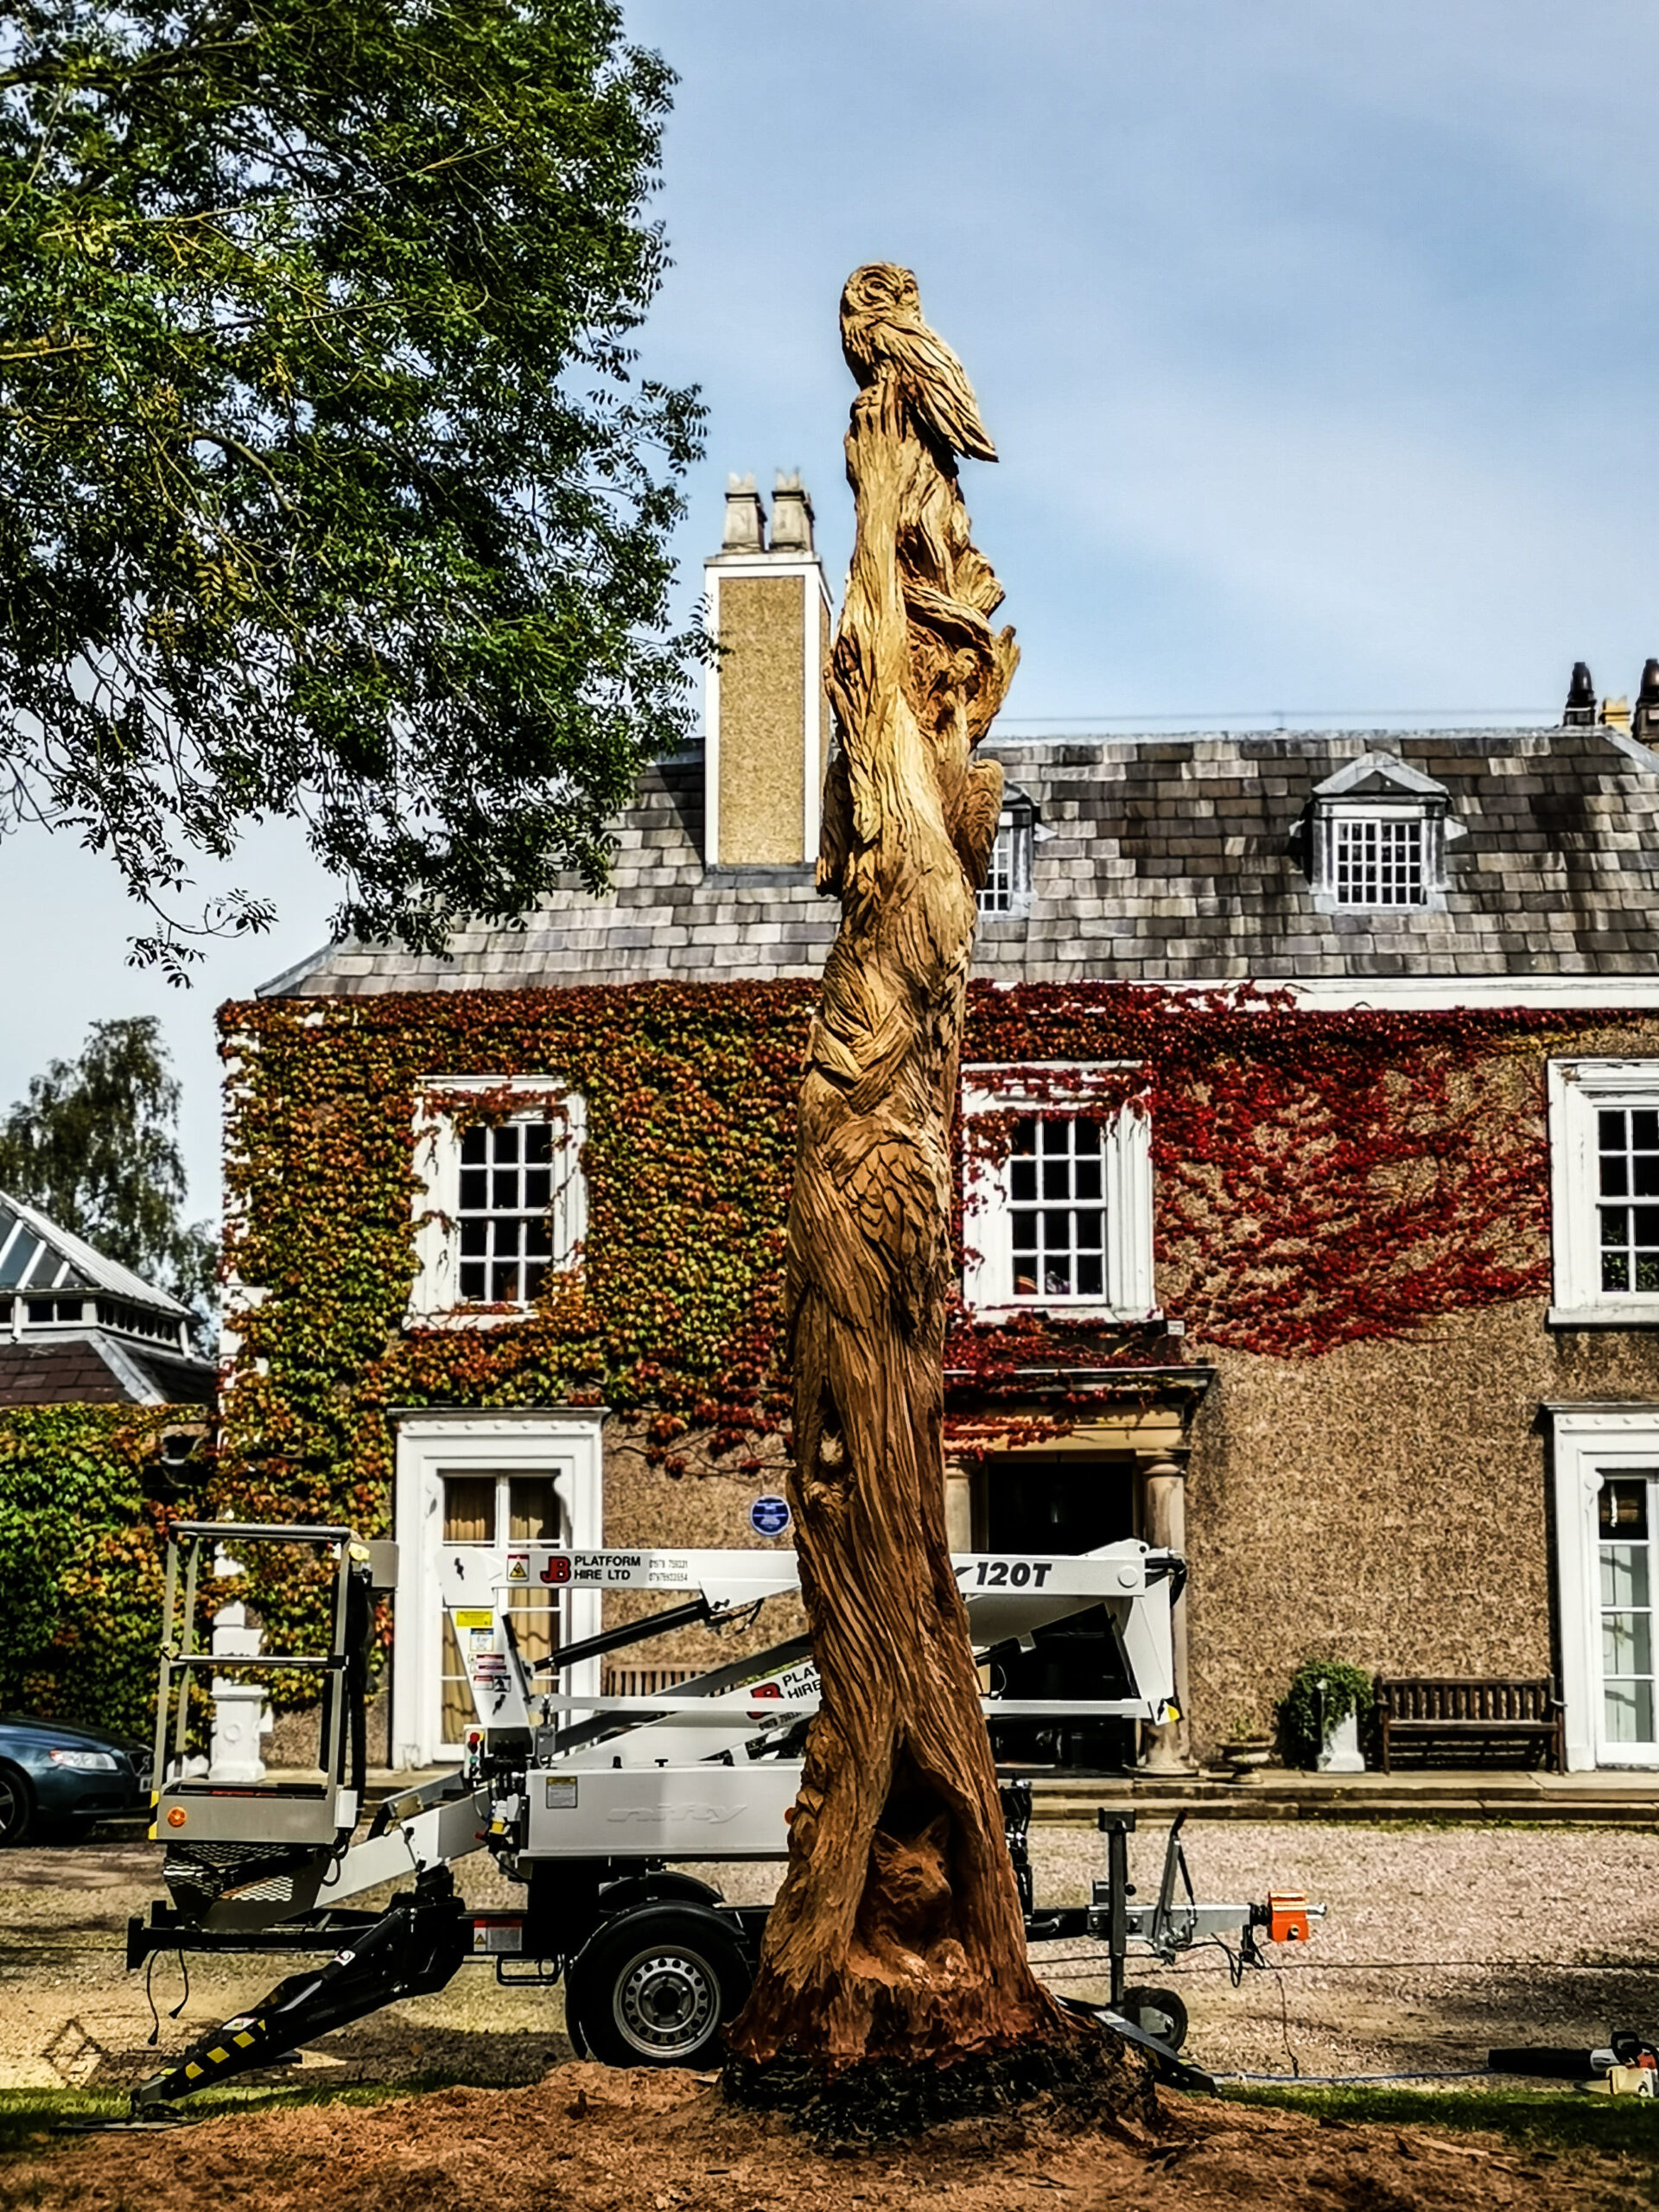 ent tree sculpture by simon o'rourke. carved into a standing monkey puzzle tree outside poulton hall